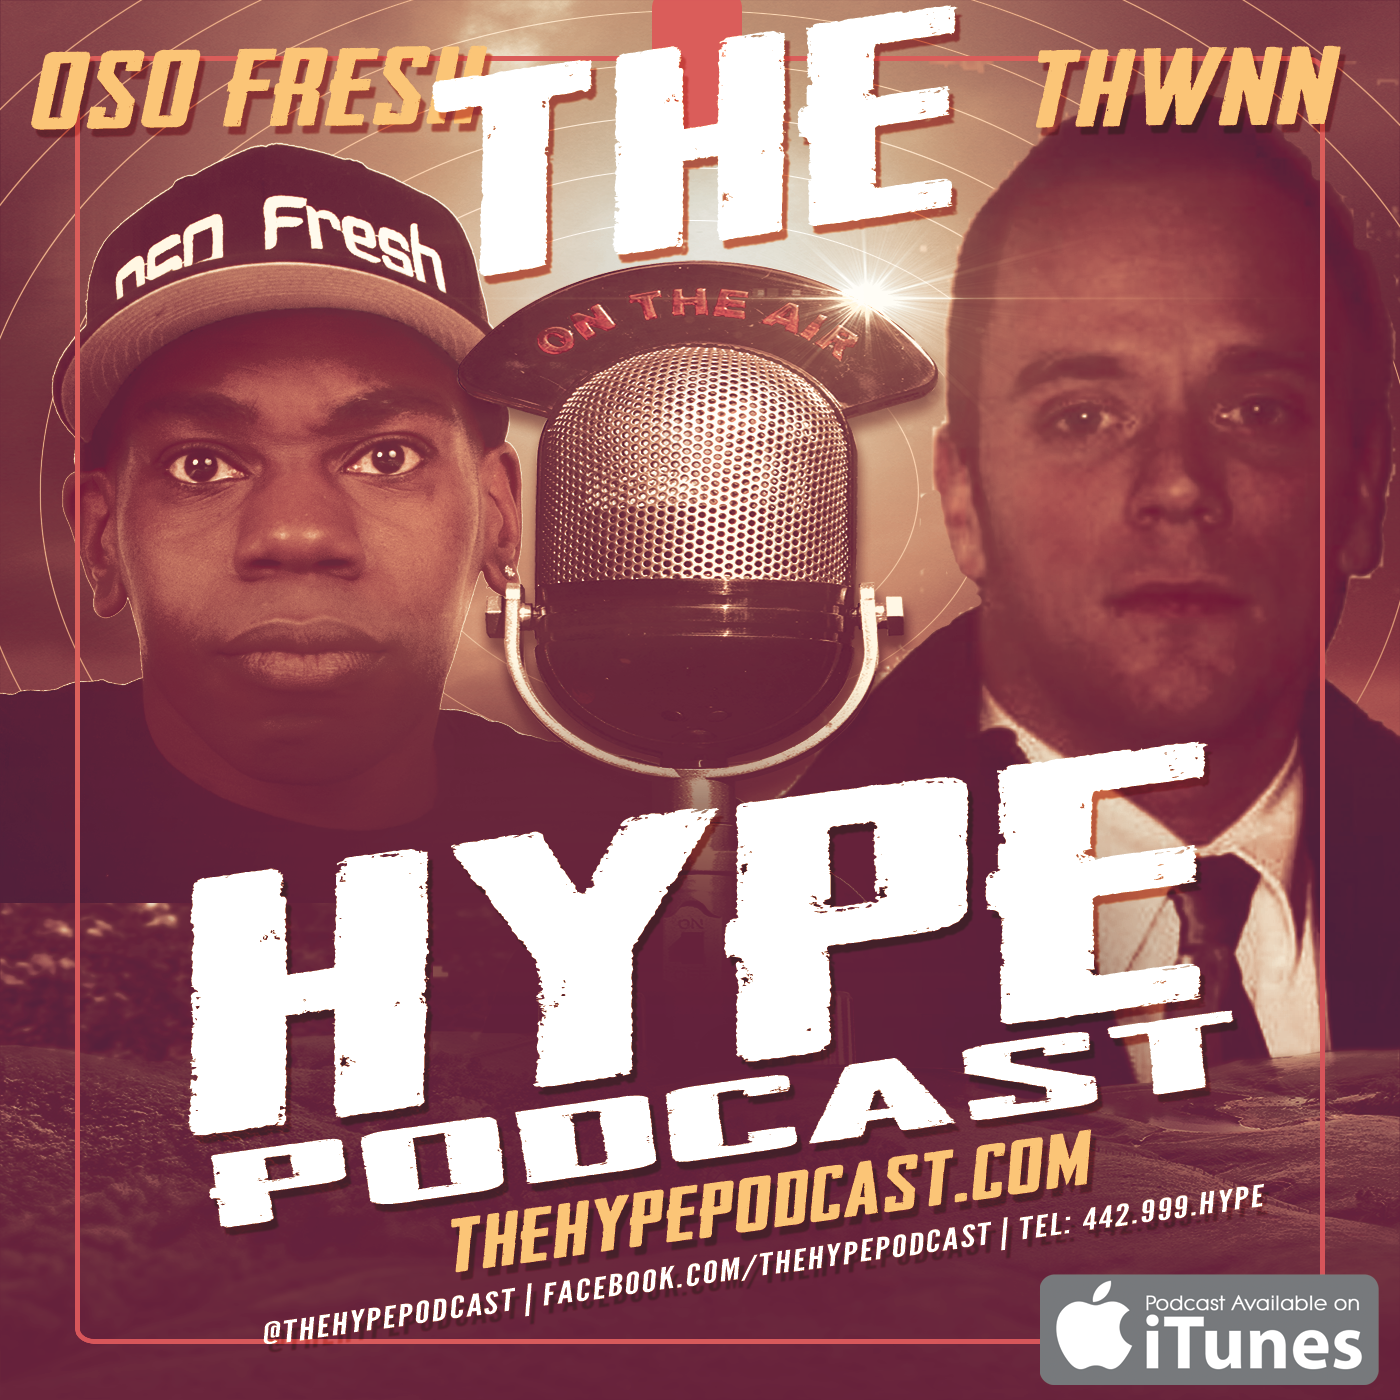 Artwork for The Hype Podcast episode 1007